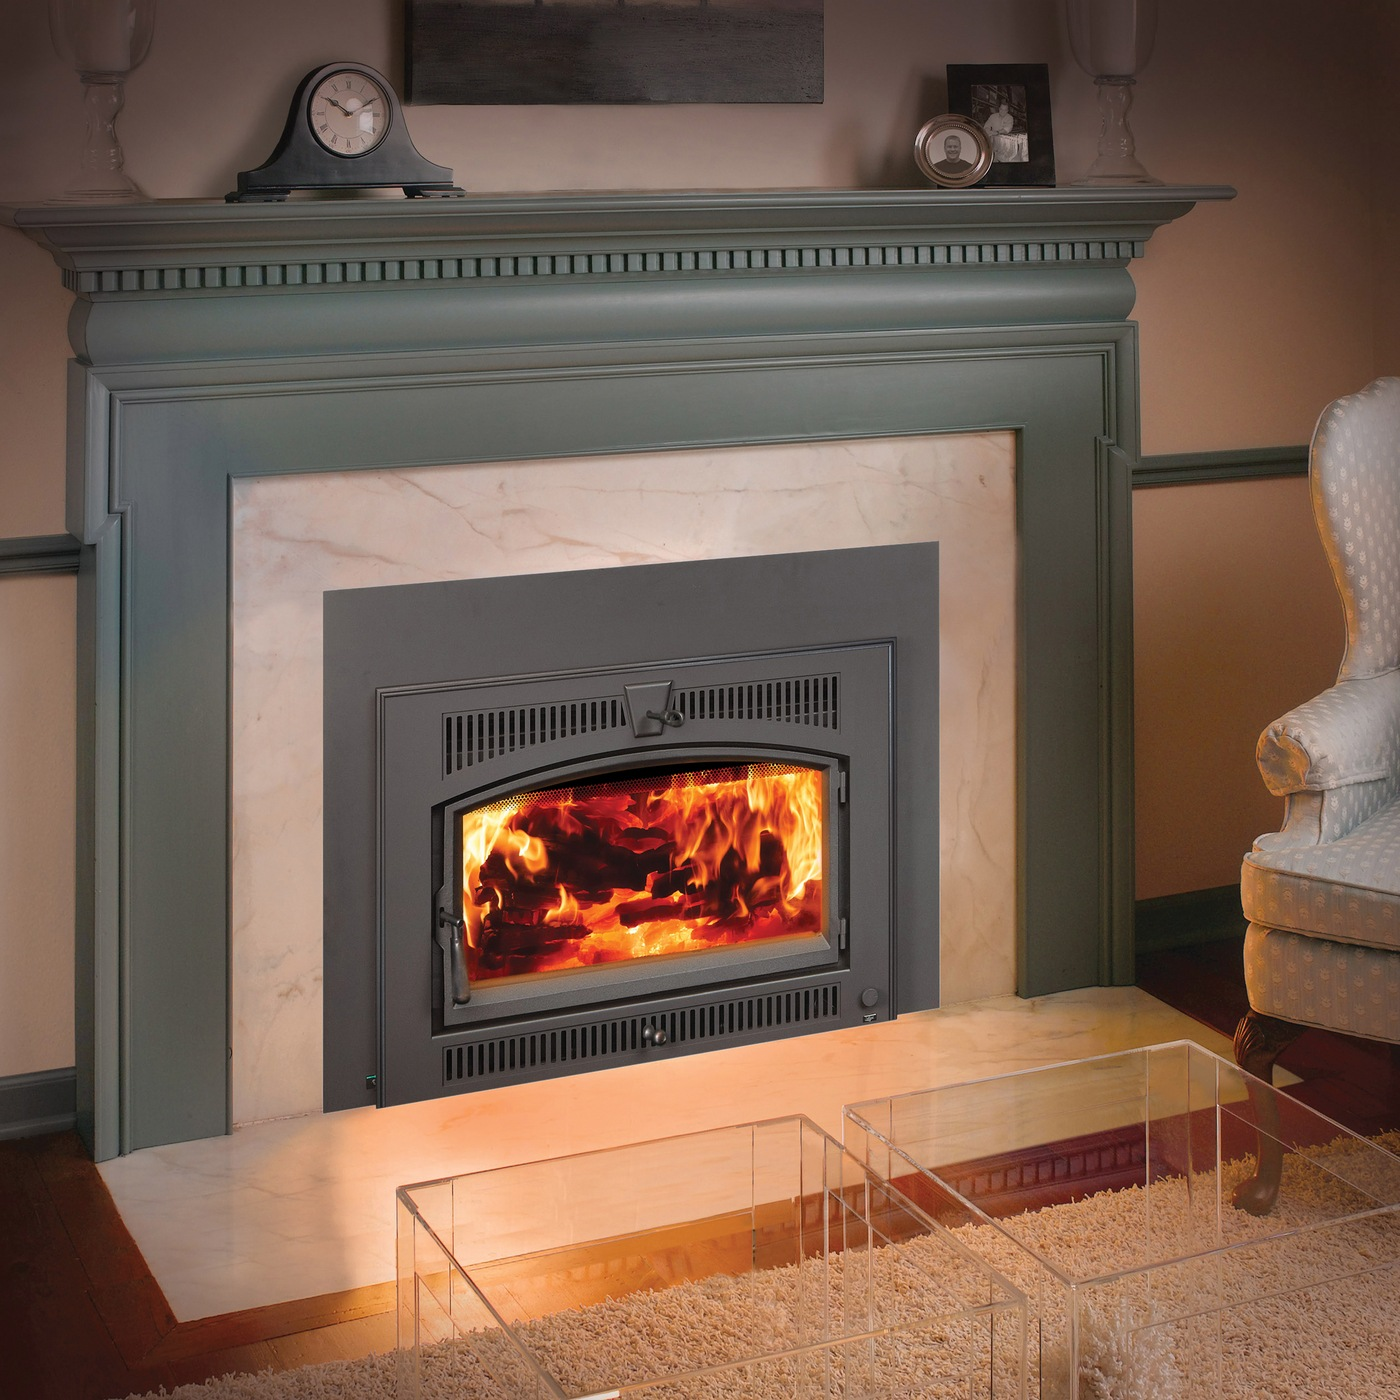 Standard Gas Fireplace Insert Dimensions Large Flush Hybrid Fyre Wood Insert Pleasanton Creative